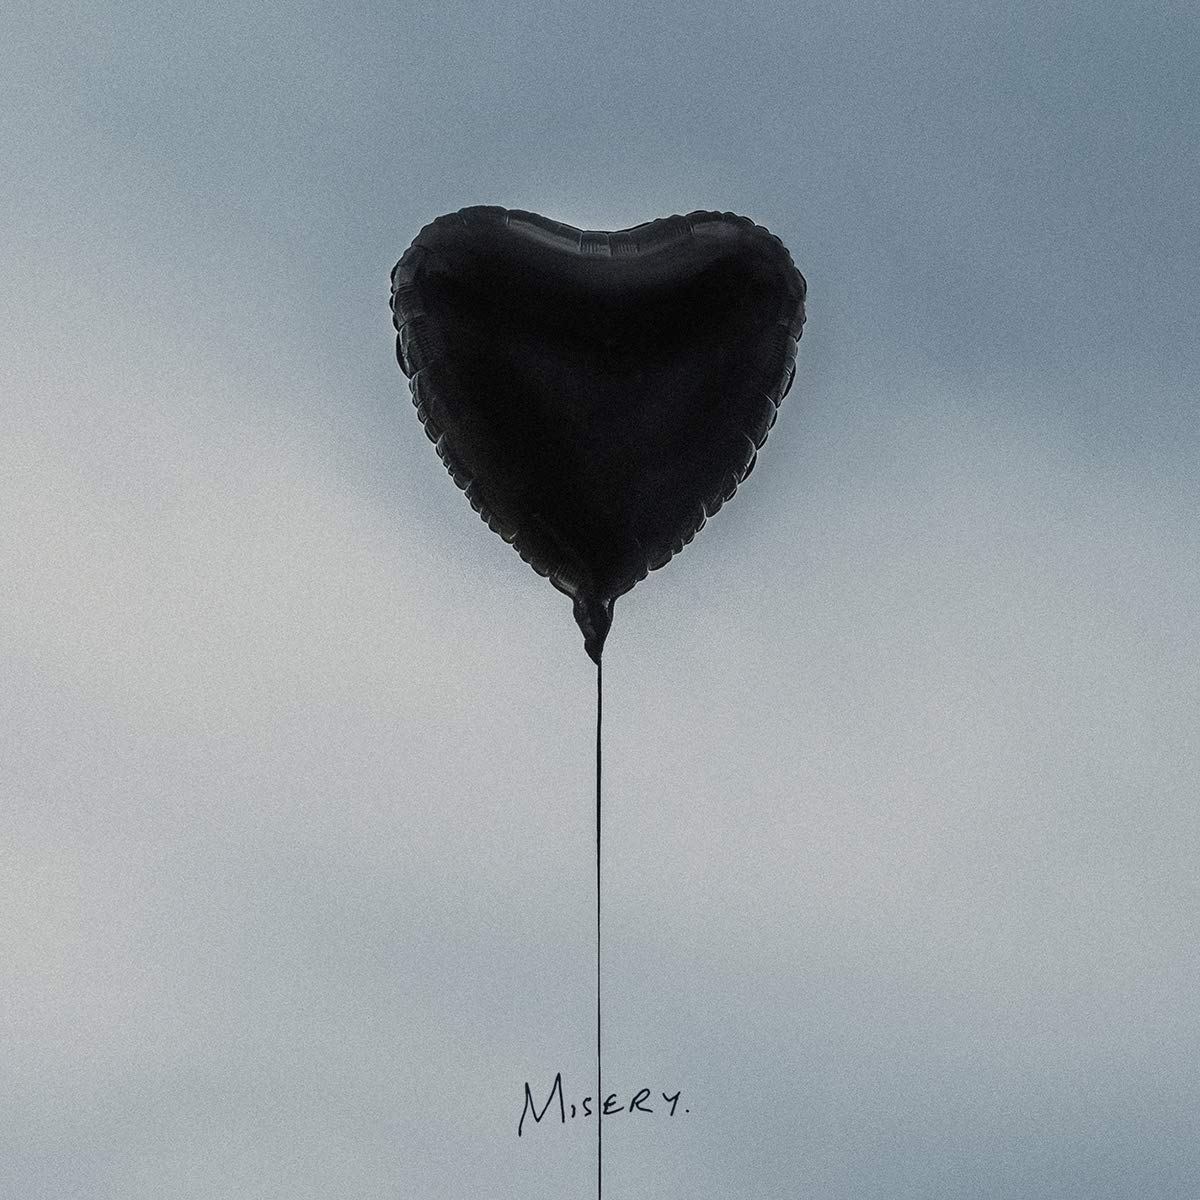 The Amity Affliction The Amity Affliction. Misery (LP) футболка affliction affliction af405emohy57